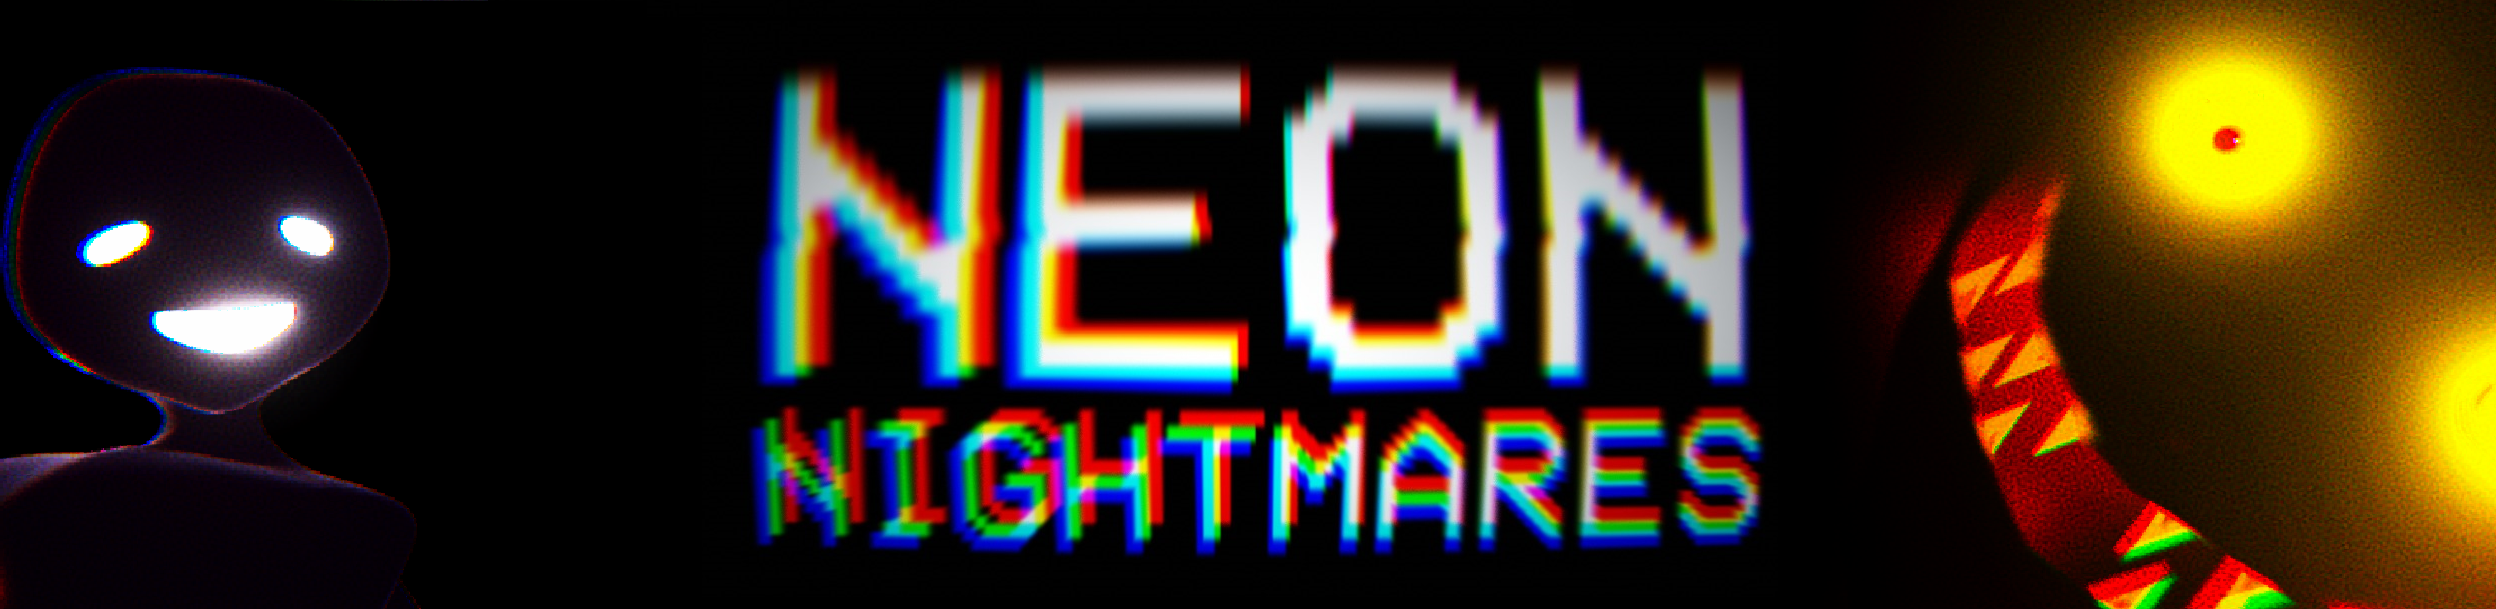 NEON NIGHTMARES (FULL RELEASE)